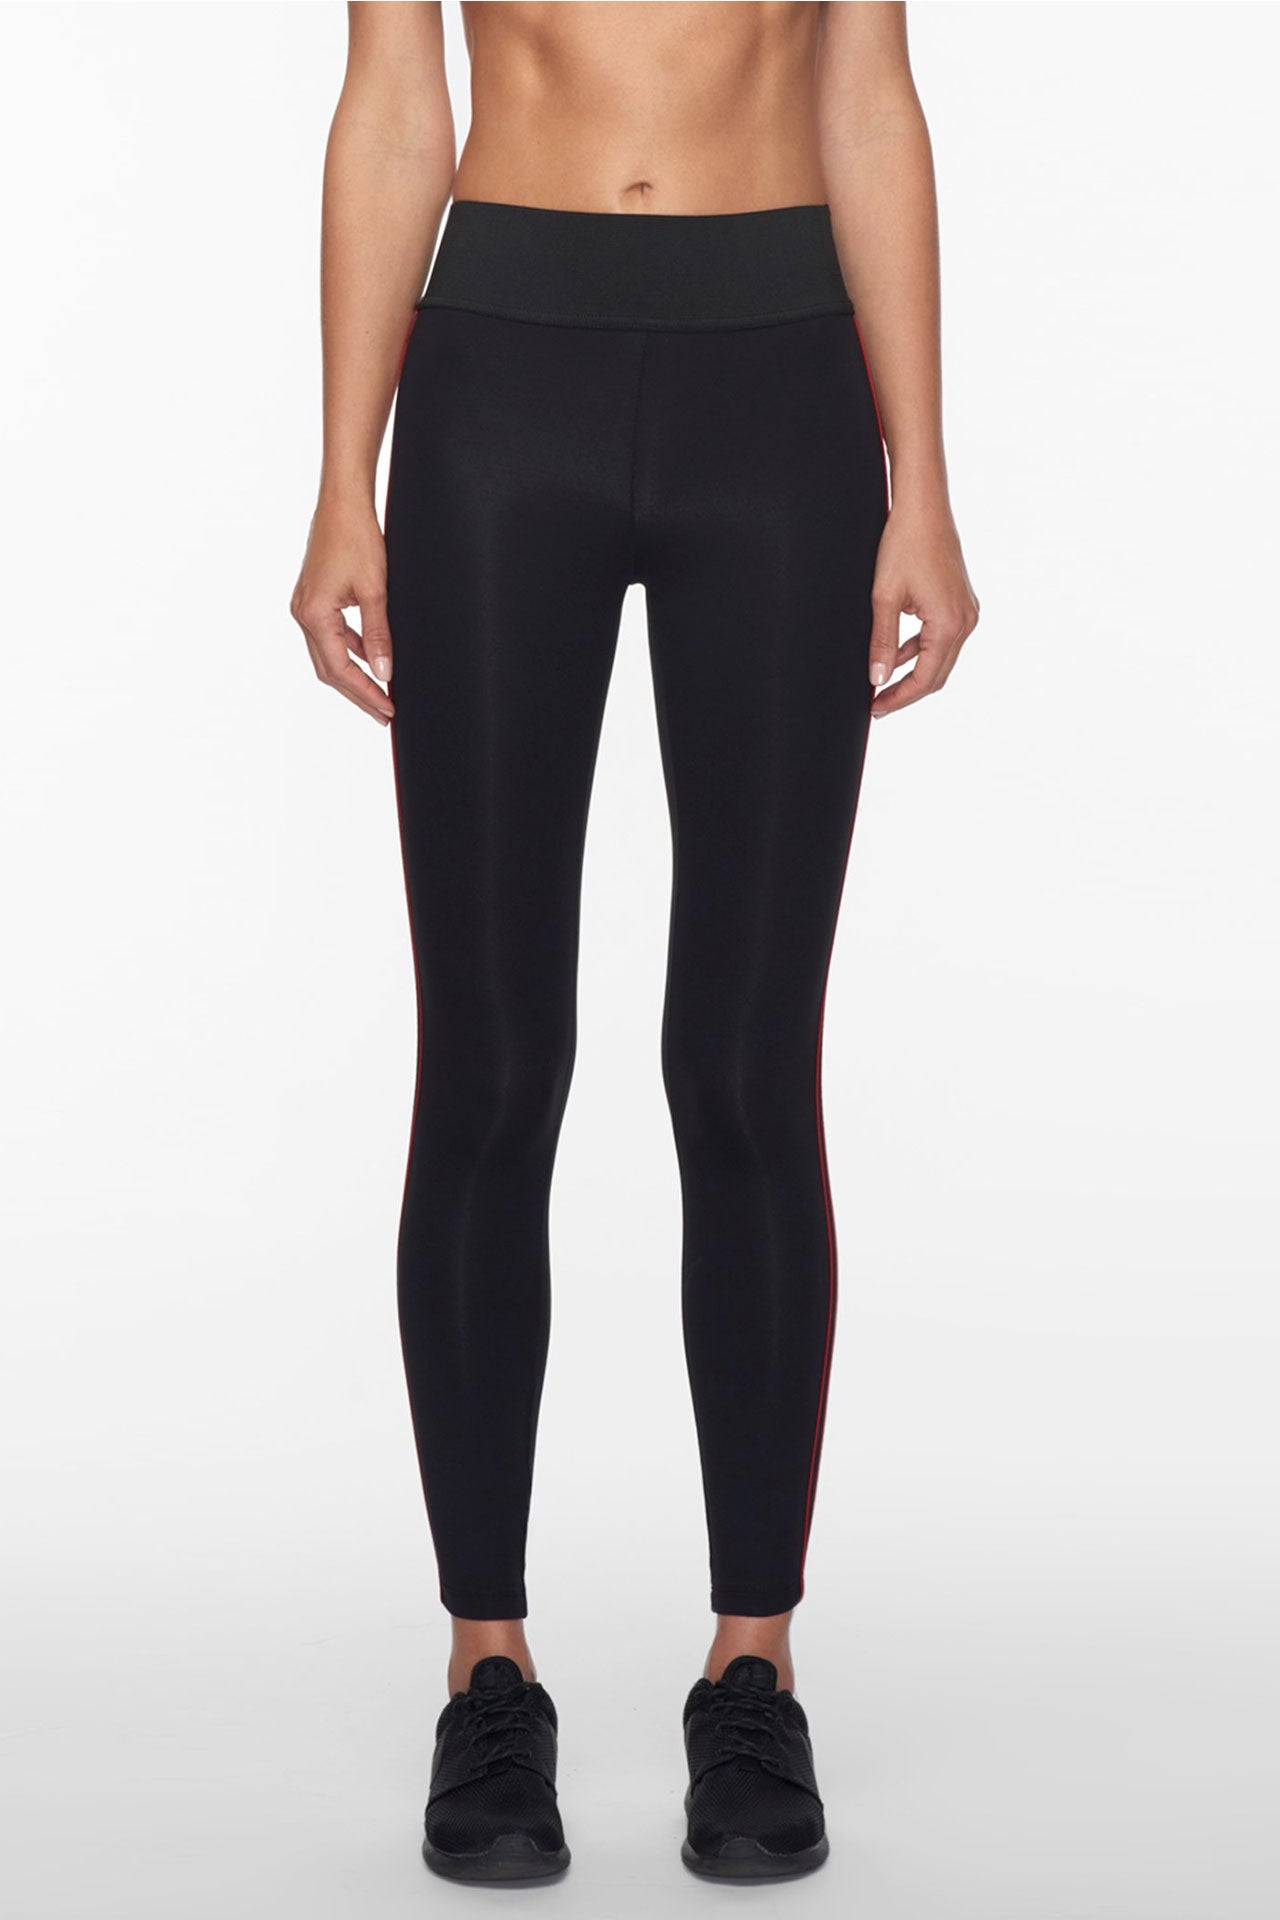 Koral Tone Legging - Sculptique